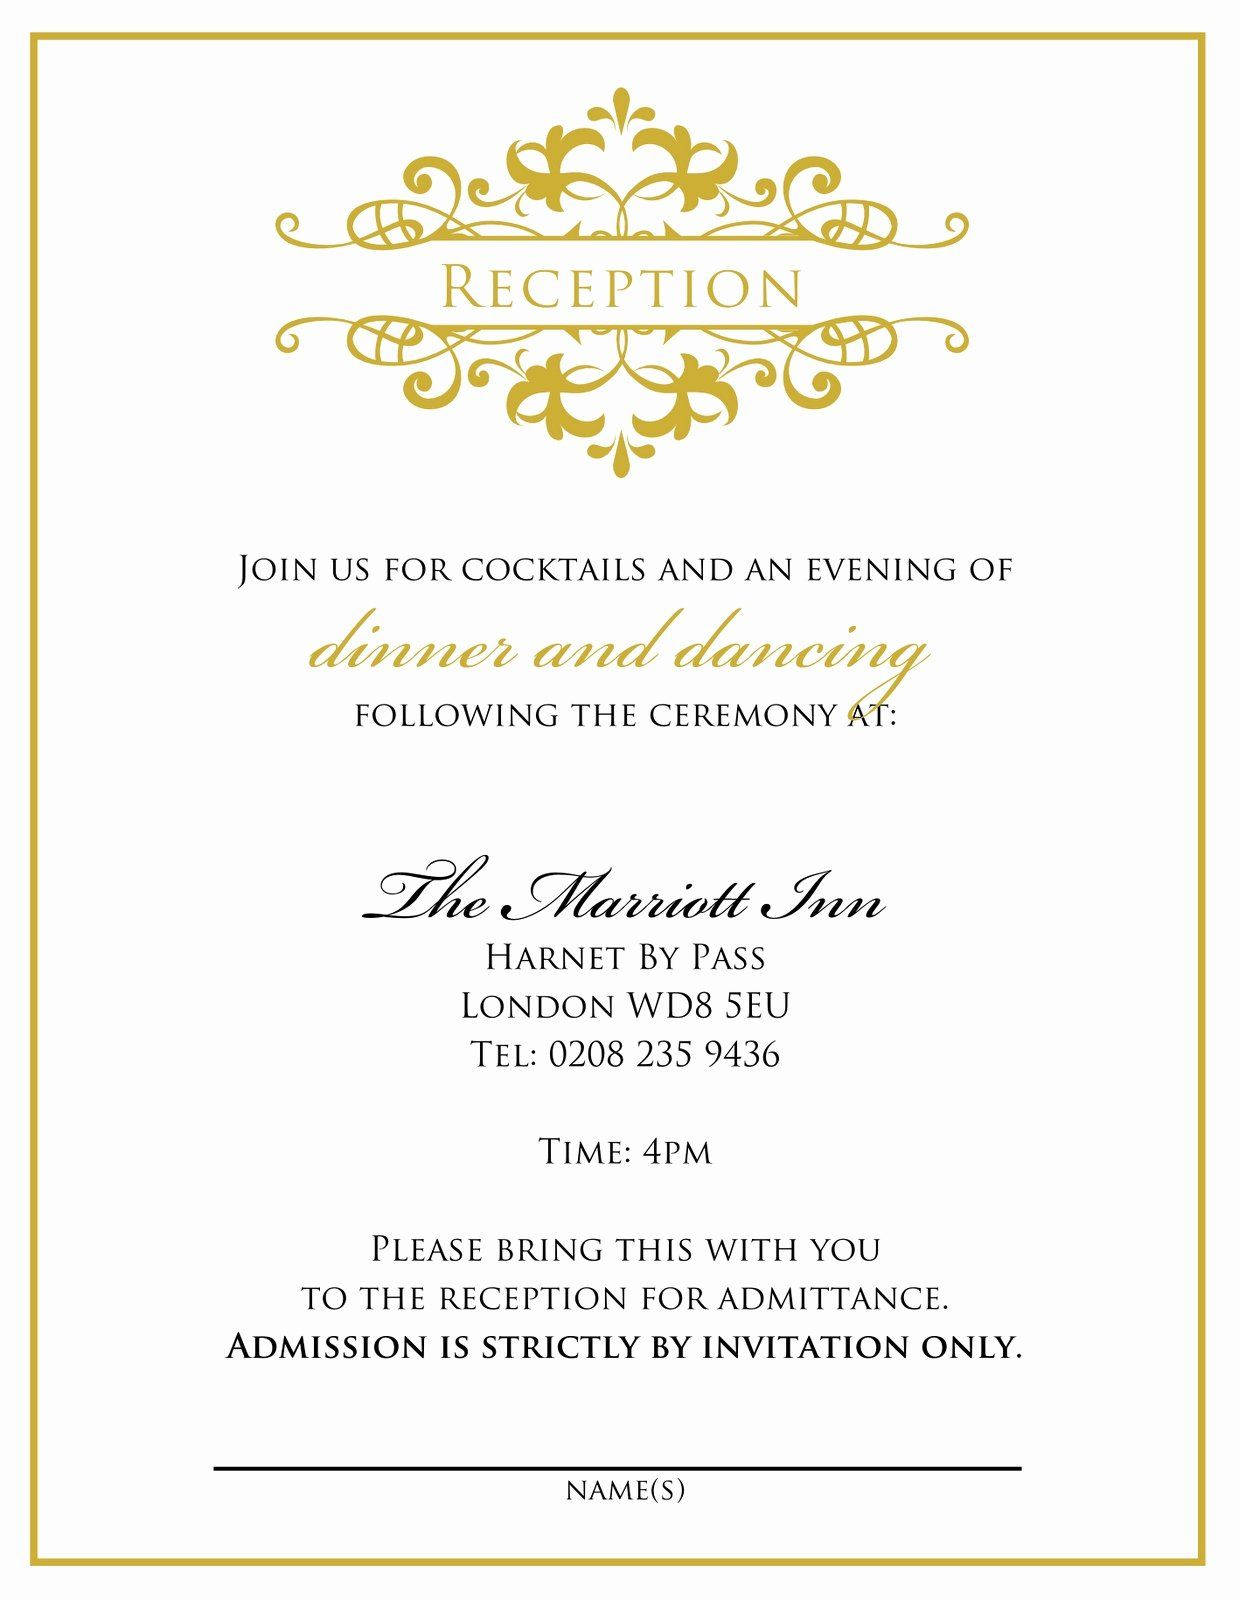 Wedding Reception Invitations Template Best Of Invitation Lette Wedding Reception Invitation Wording Reception Invitation Wording Wedding Reception Invitations